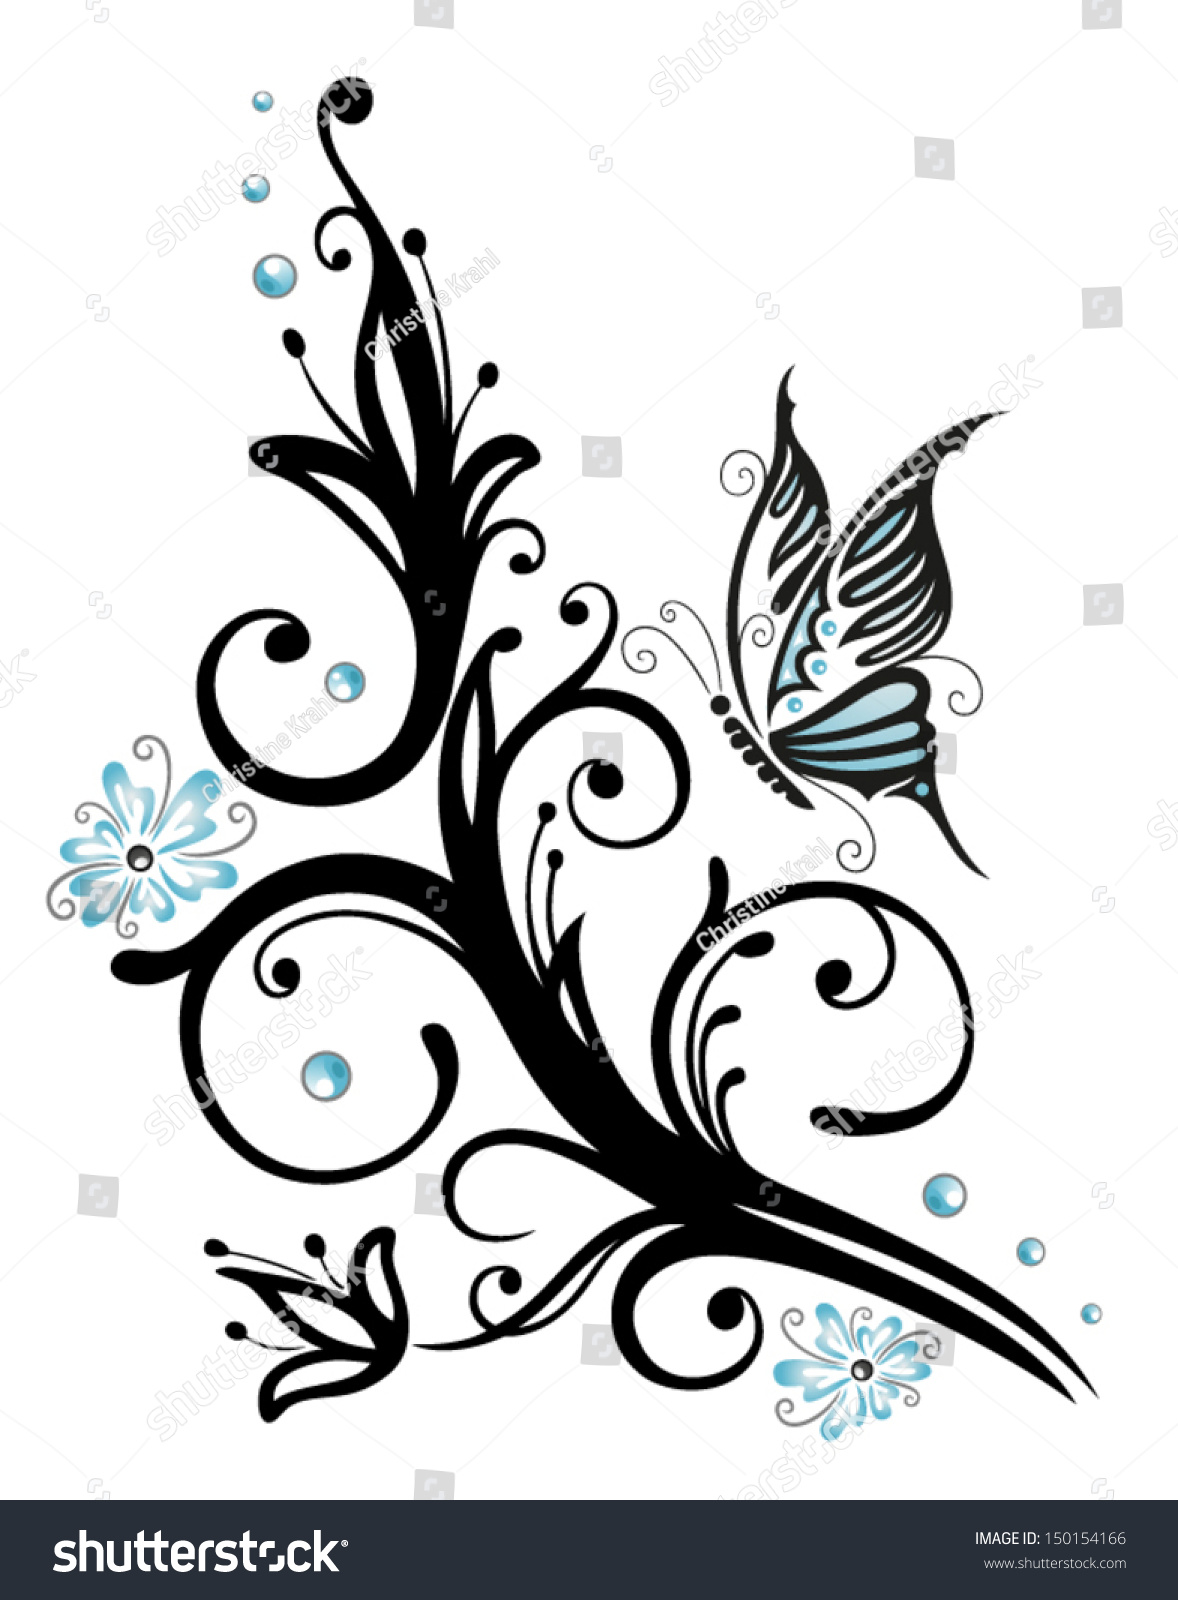 Black blue flowers butterfly tattoo style stock vector 150154166 black and blue flowers with butterfly tattoo style dhlflorist Images